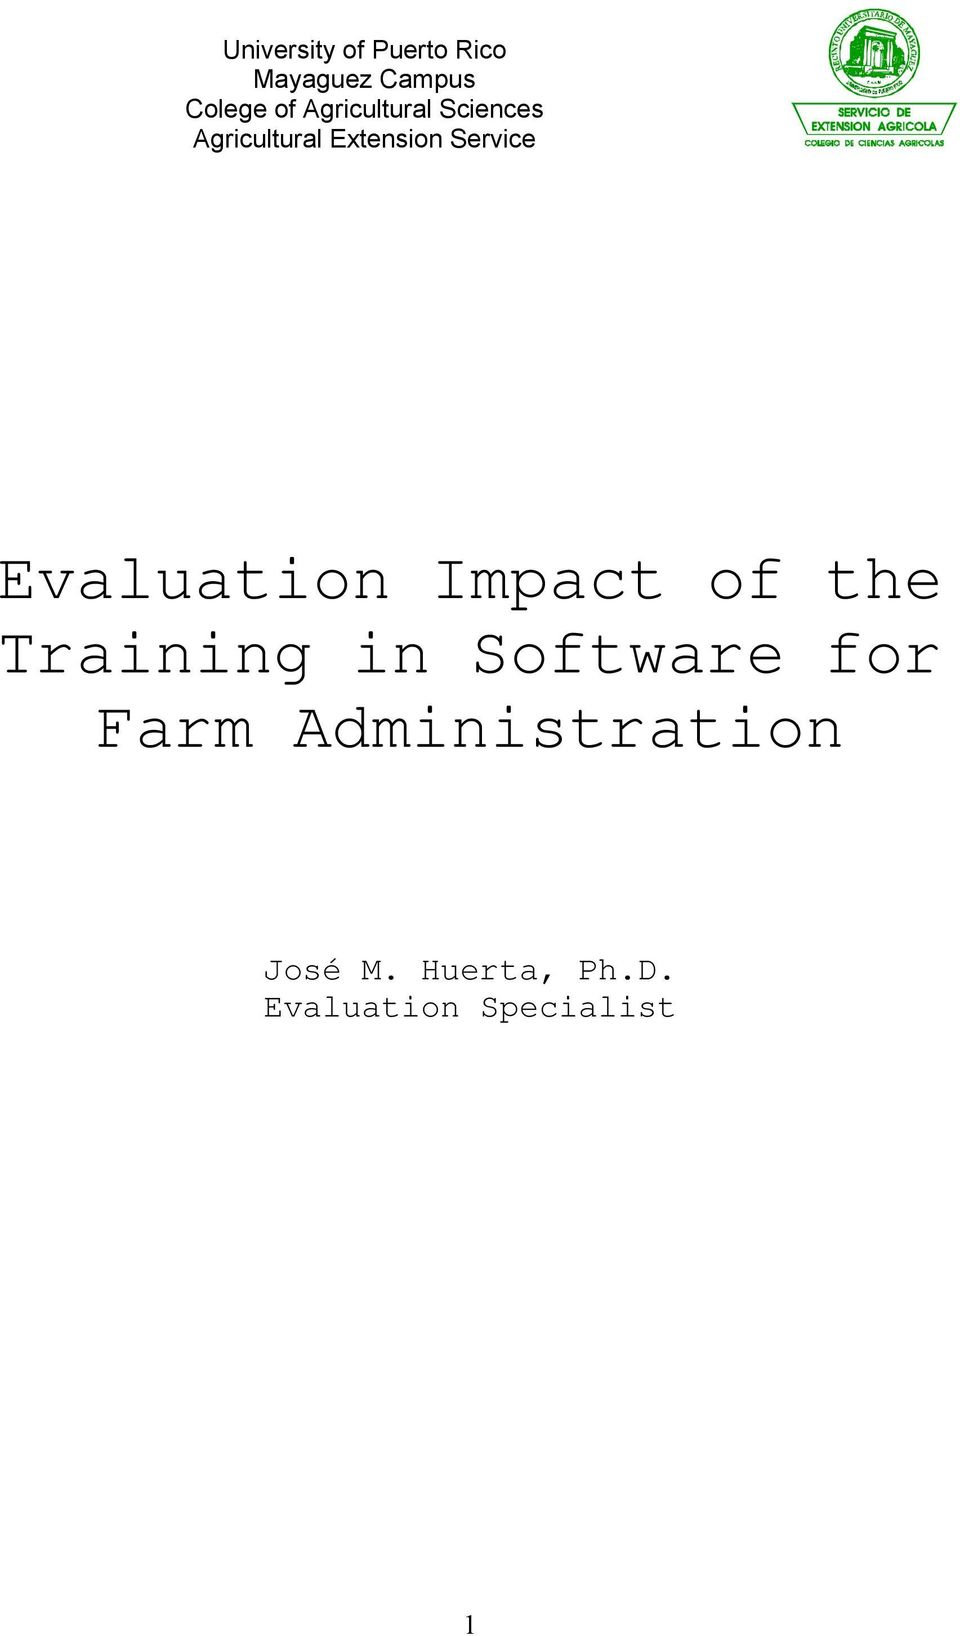 Evaluation Impact of the Training in Software for Farm